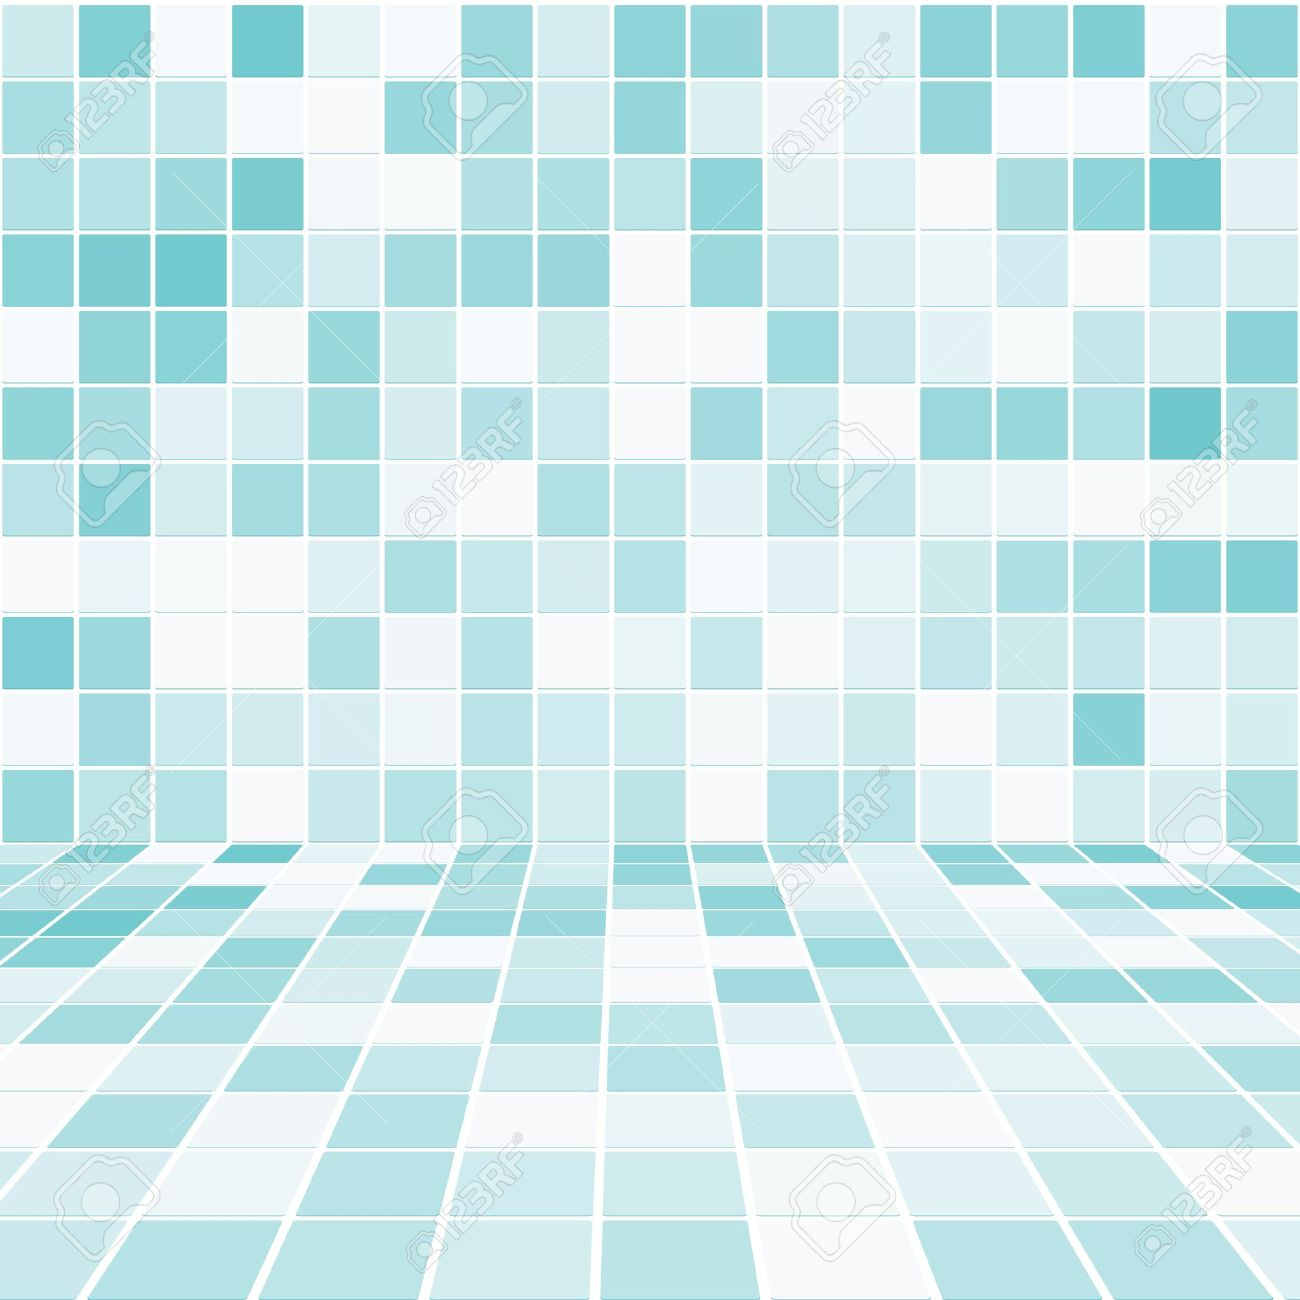 Interior Room with Mosaic Tiled Wall Vector - 13551179